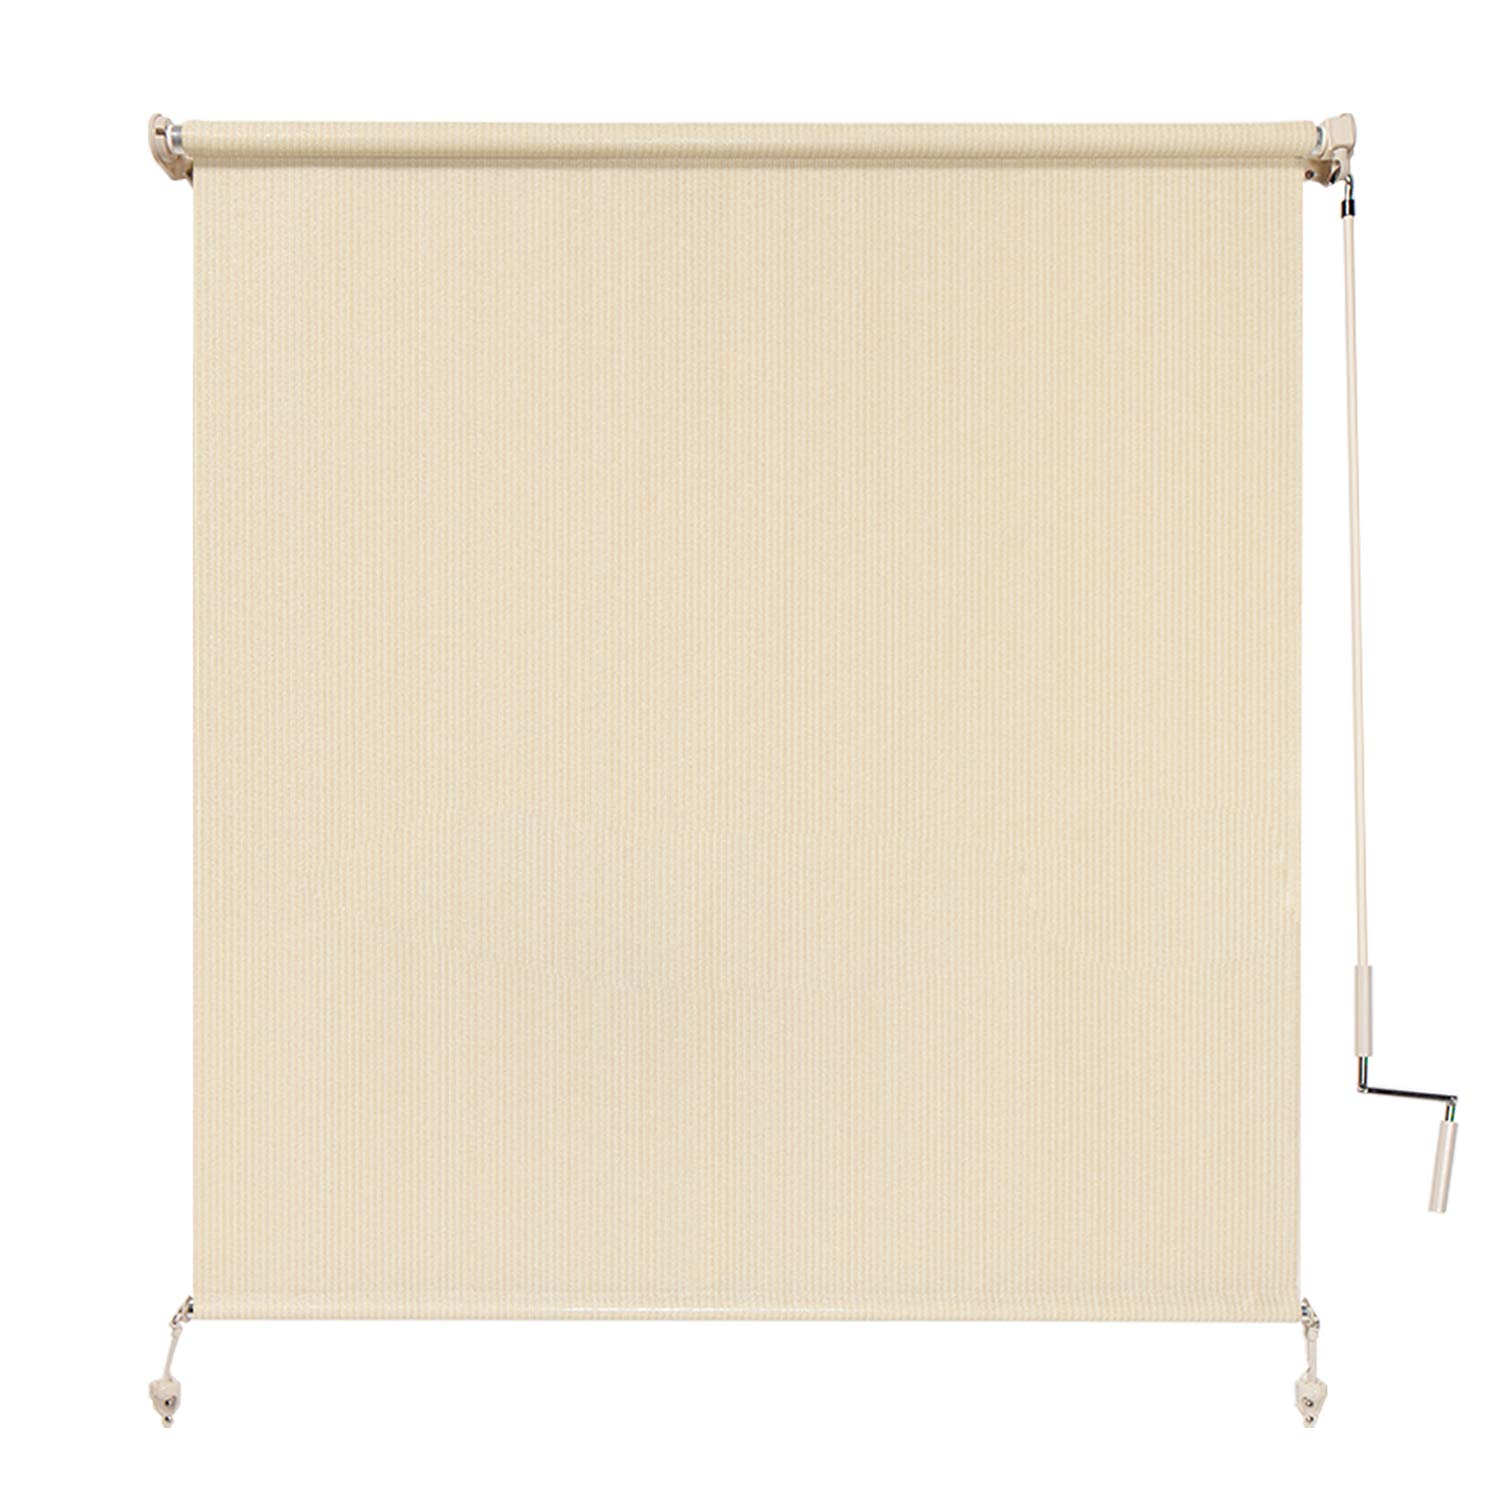 Coolaroo Exterior Roller Shade, Cordless Roller Shade with 80% UV Protection, No Valance, (4' W X 6' L), Sesame